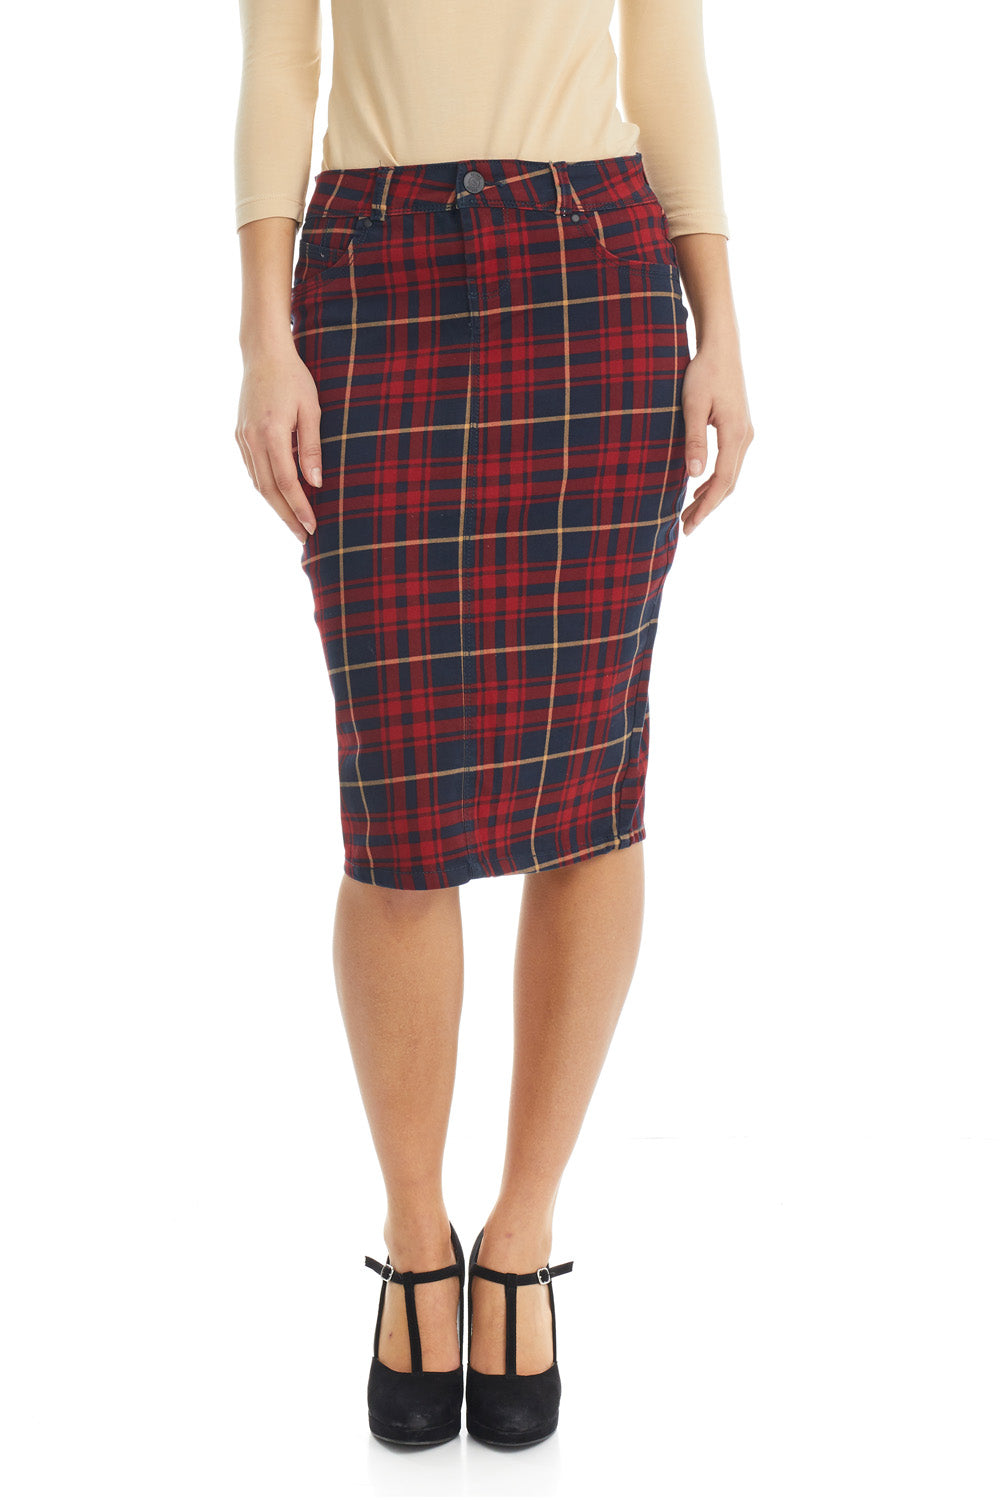 Esteez MELROSE Skirt - Powerstretch Jean Skirt for WOMEN - CLASSIC PLAID